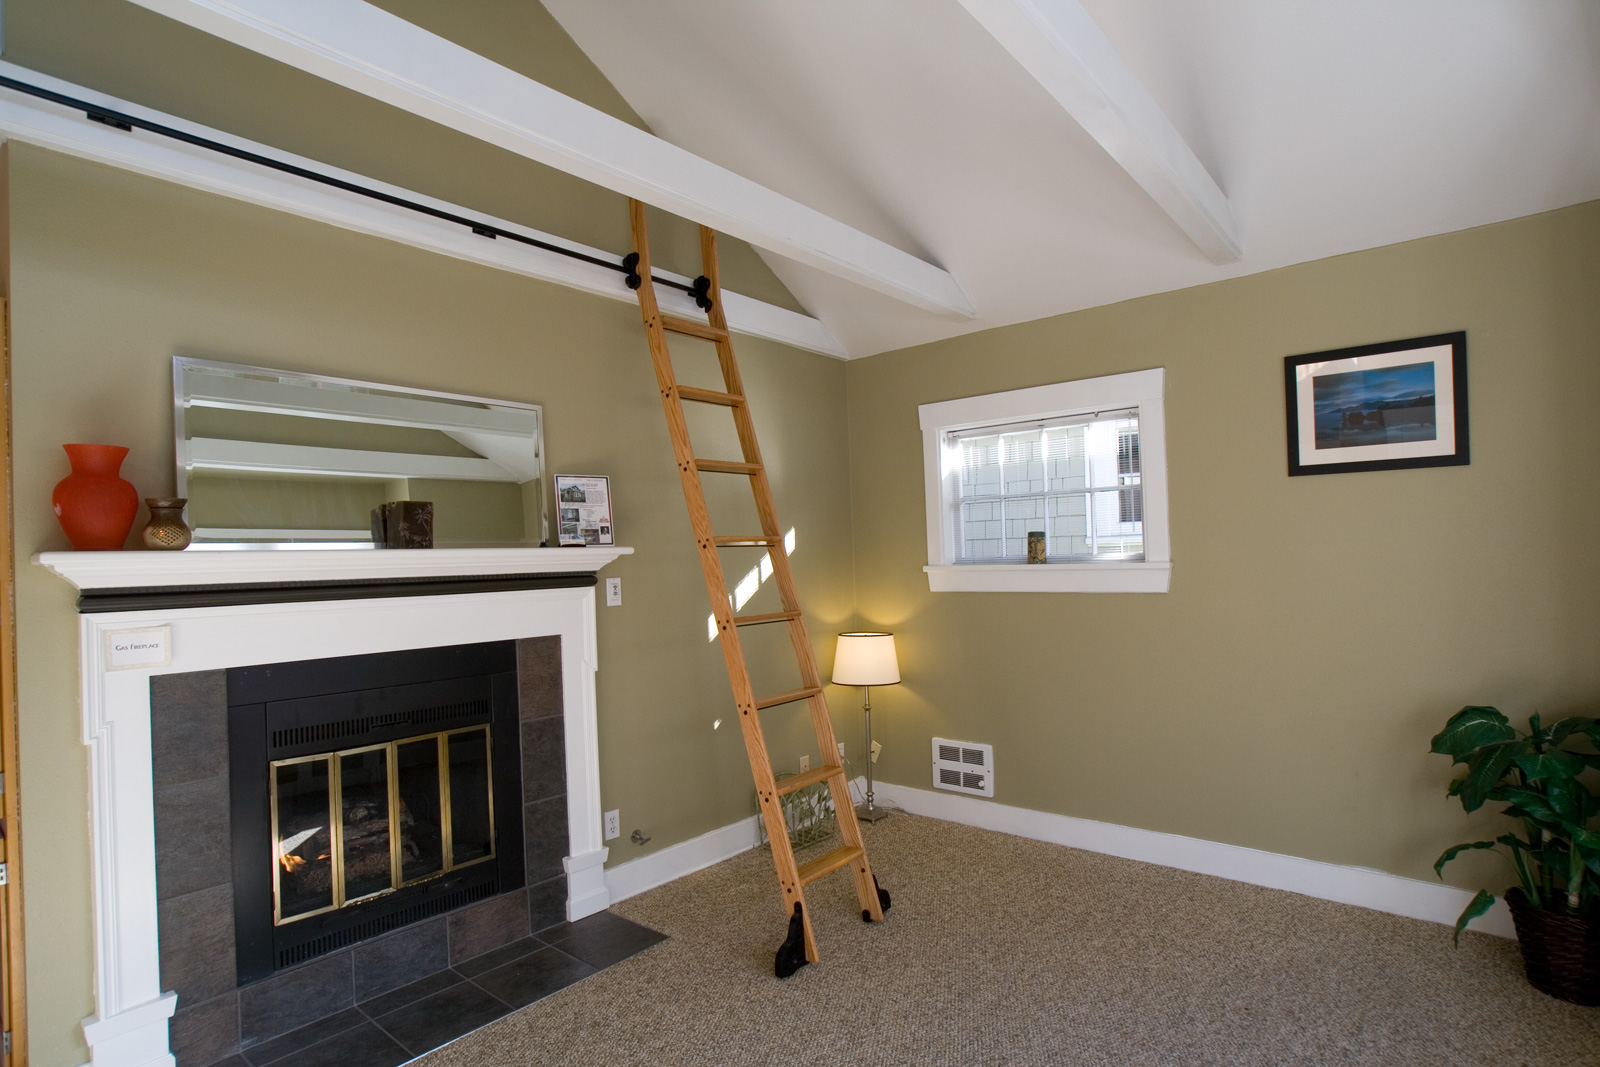 Picture of: Amazing Paint Colors for Basement